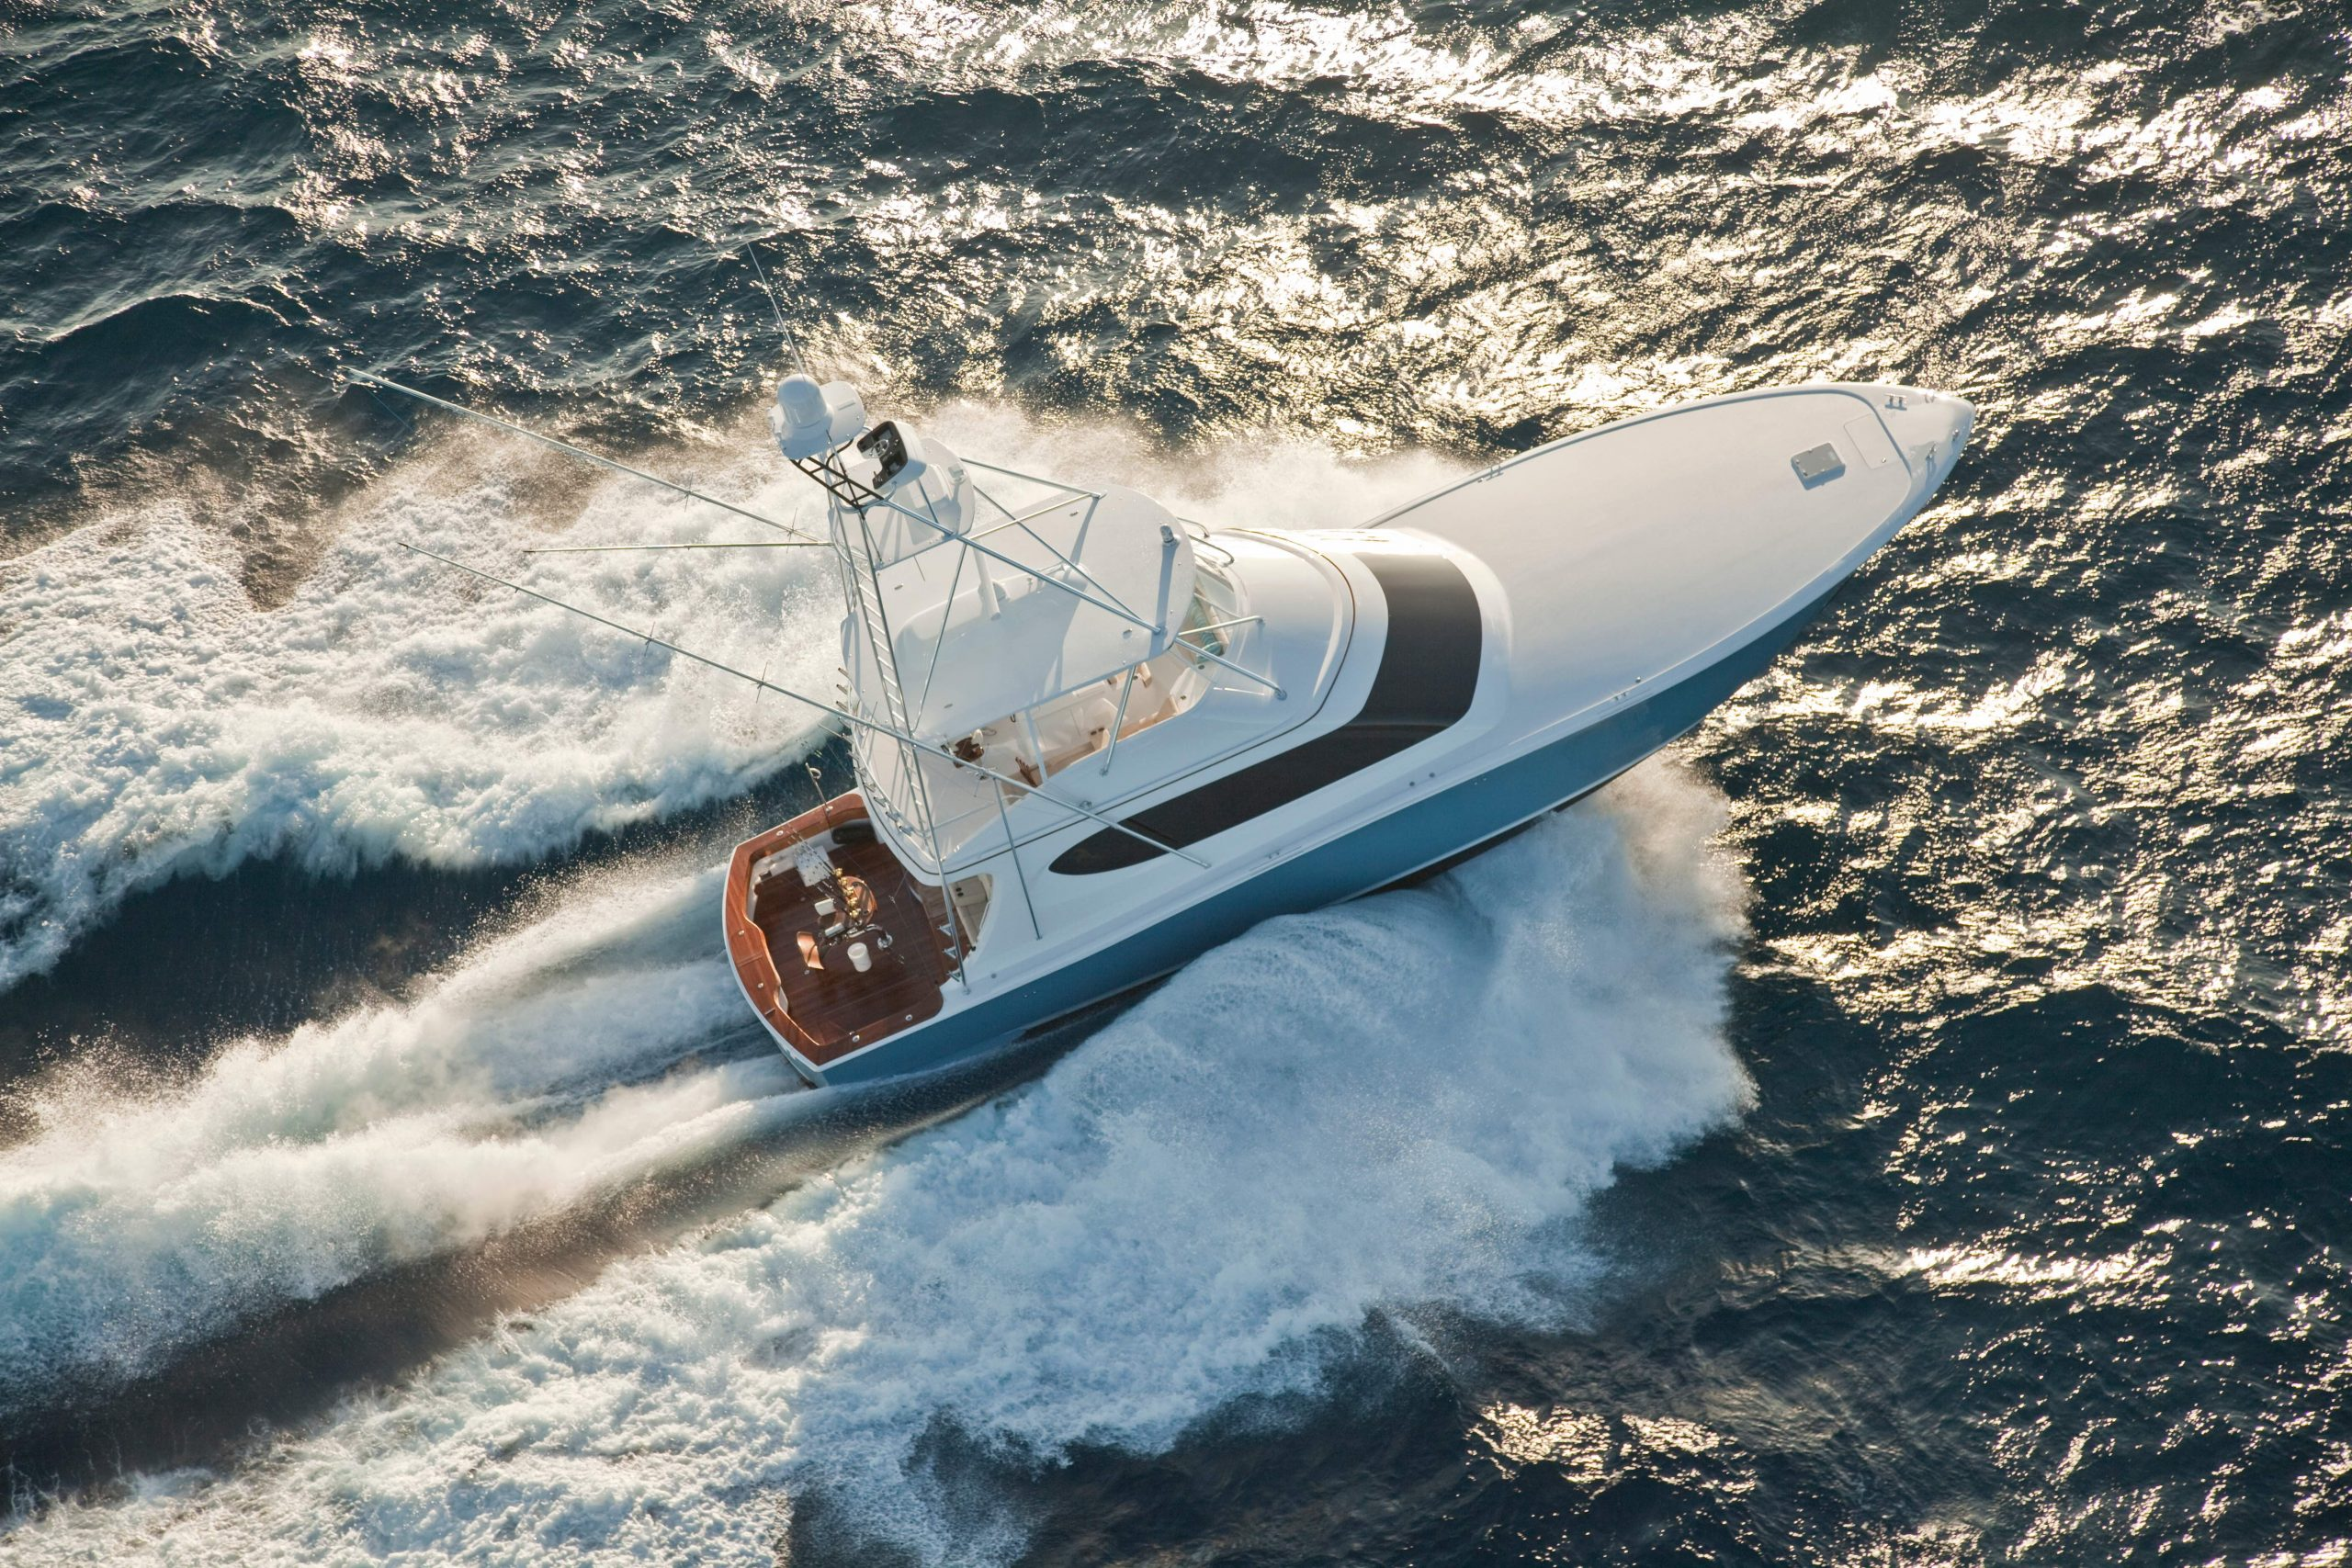 Hatteras GT70 Boat Test and Review by PCS Columnist and